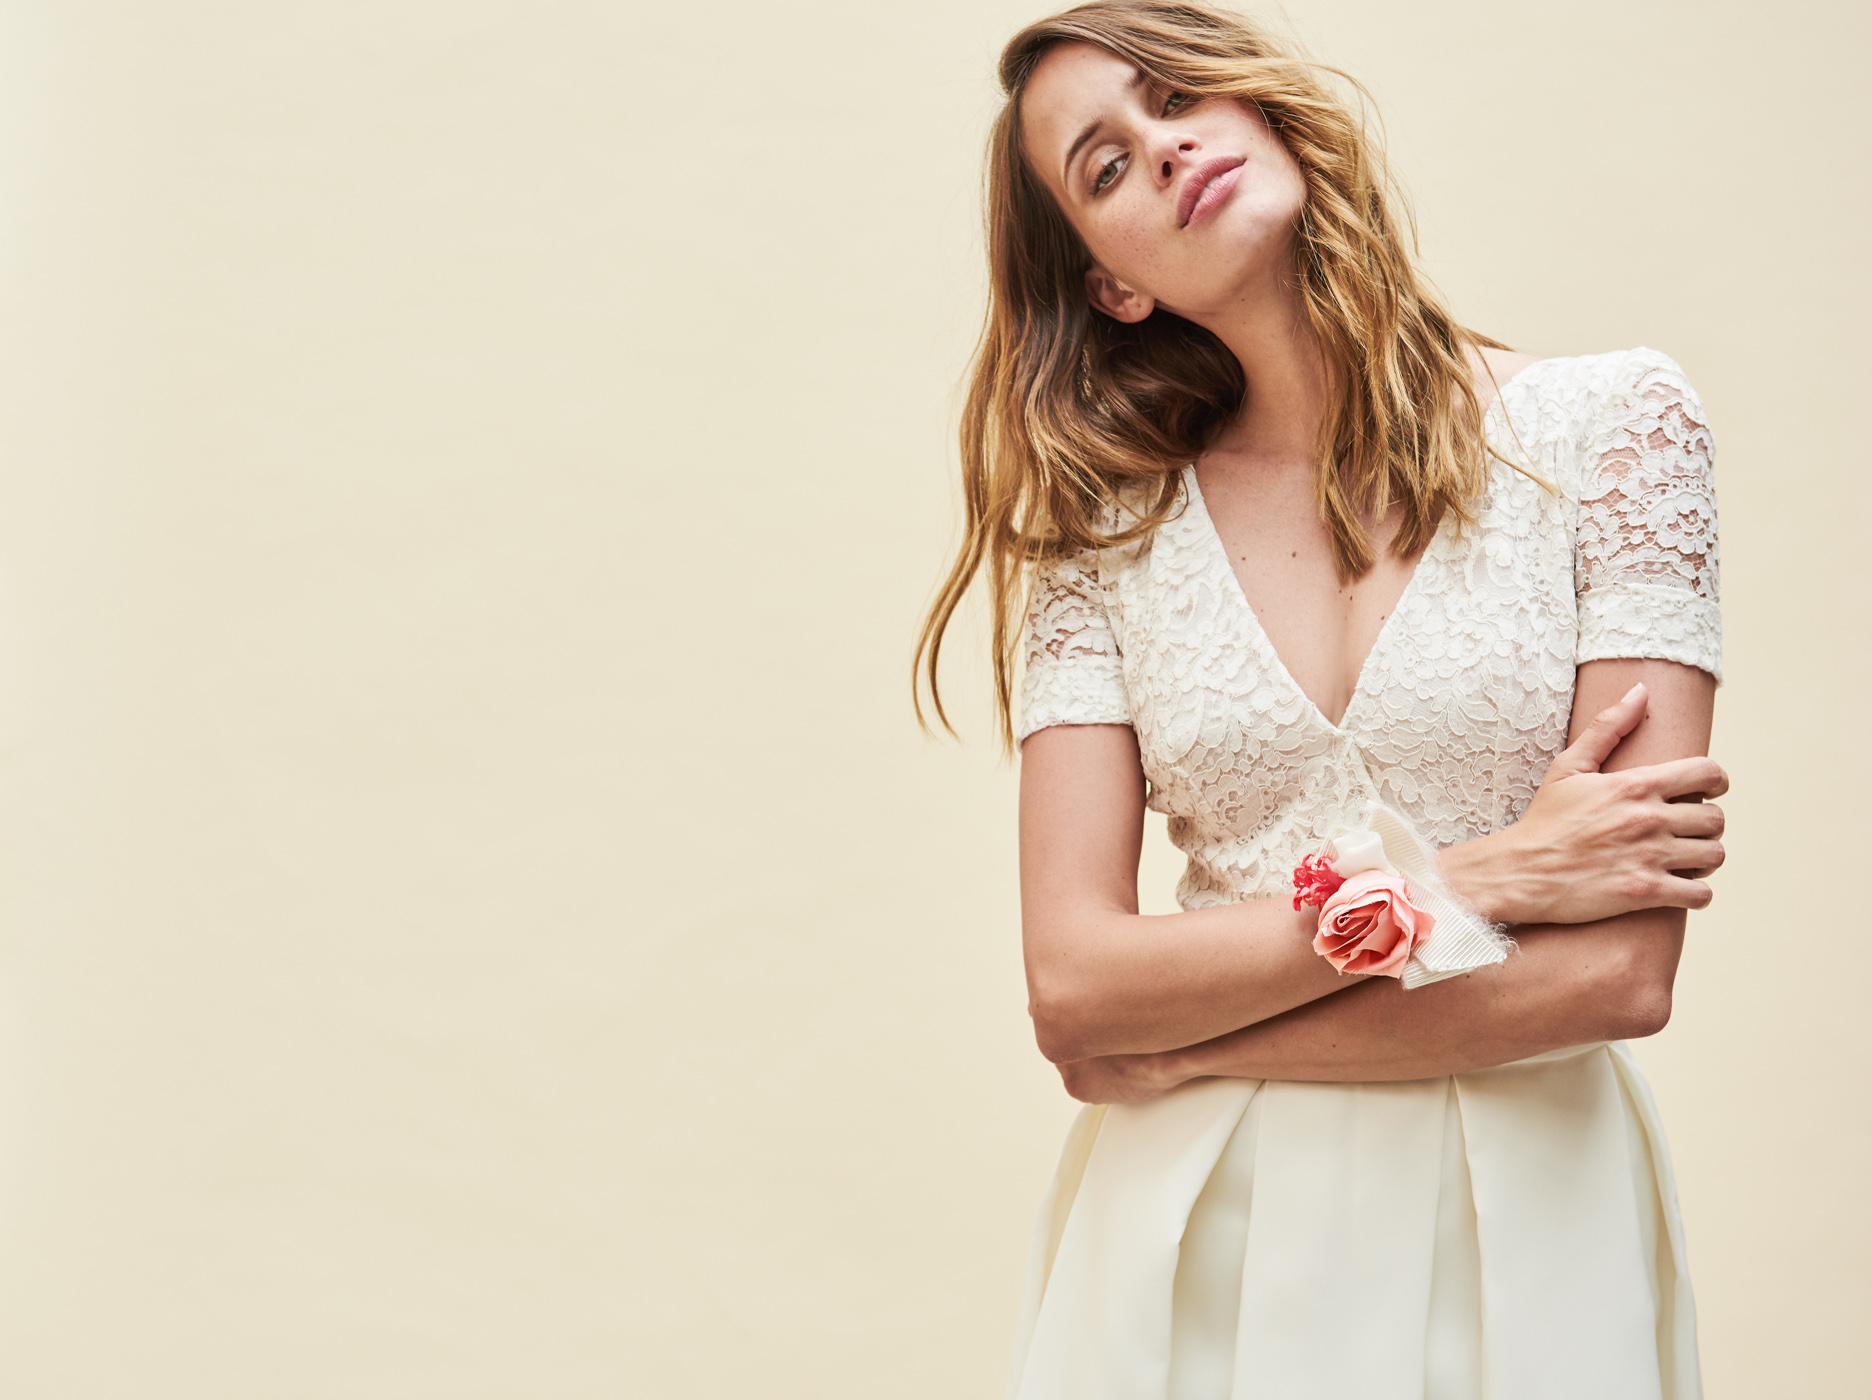 Nouvelle Collection Robes de Mariée 2018 Maison Floret-24